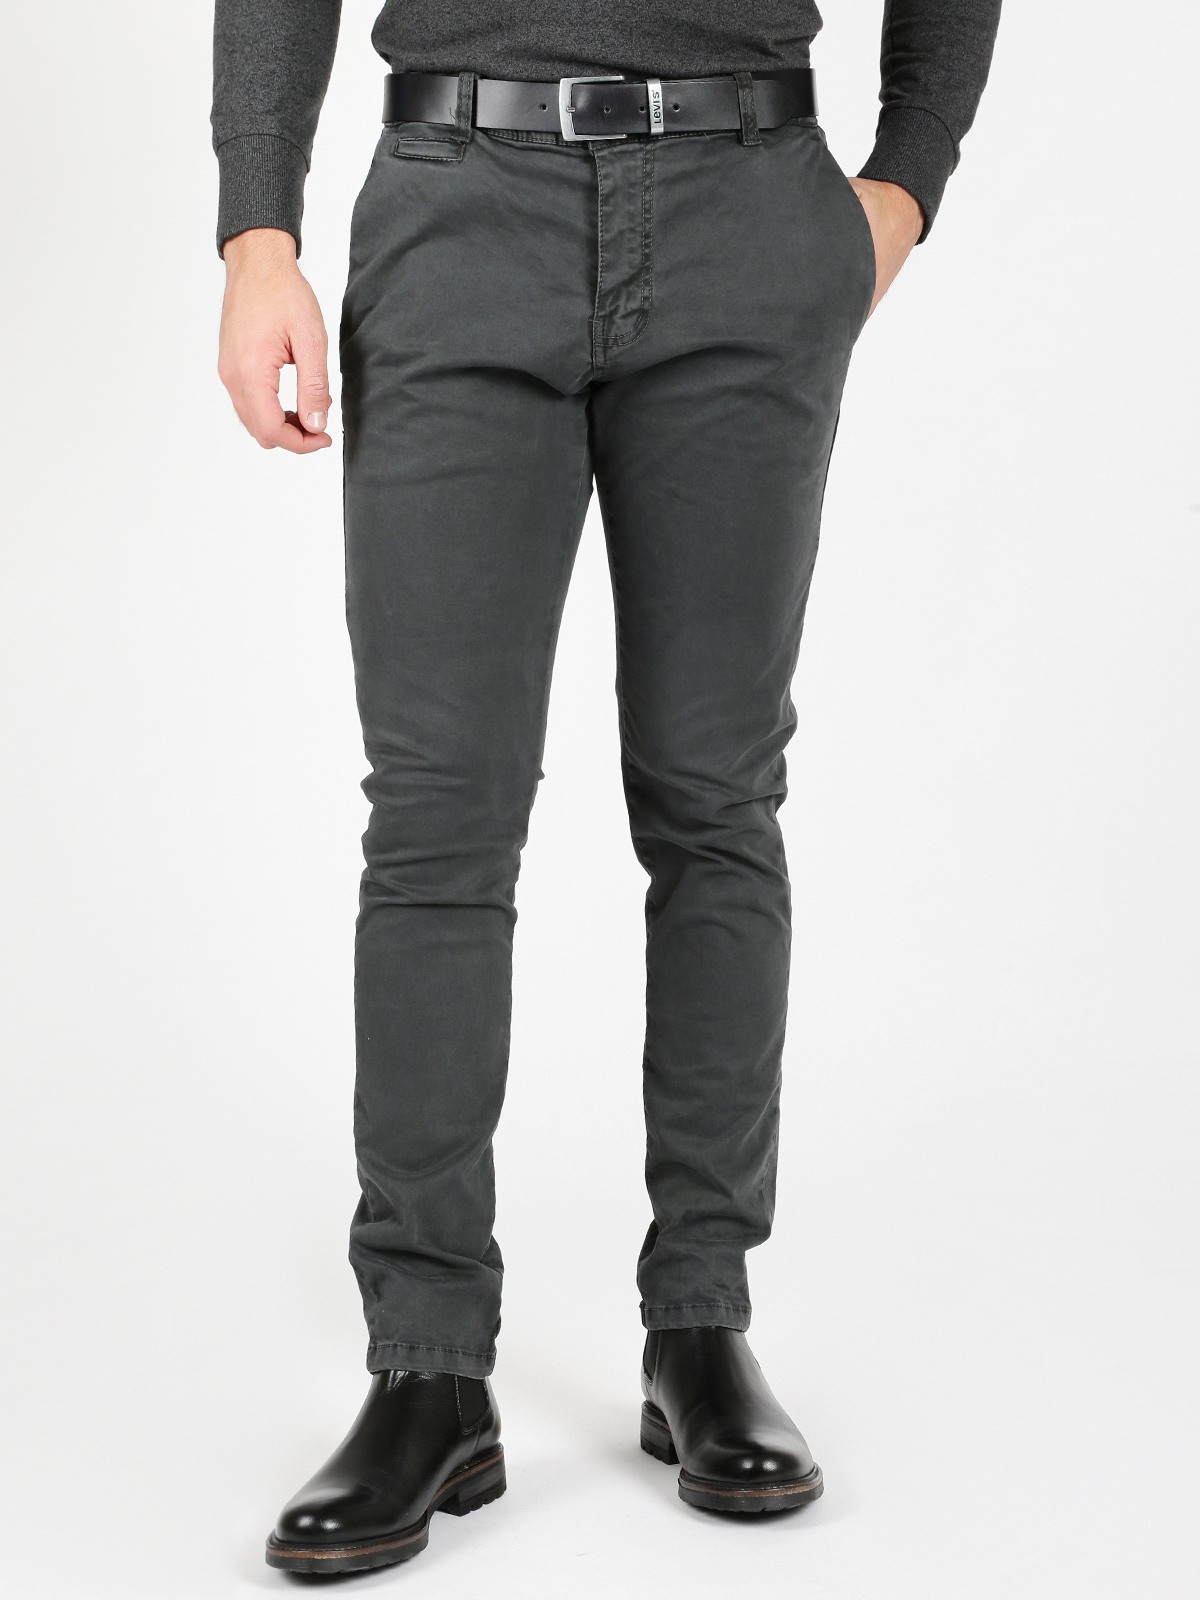 Gray Trousers Cotton